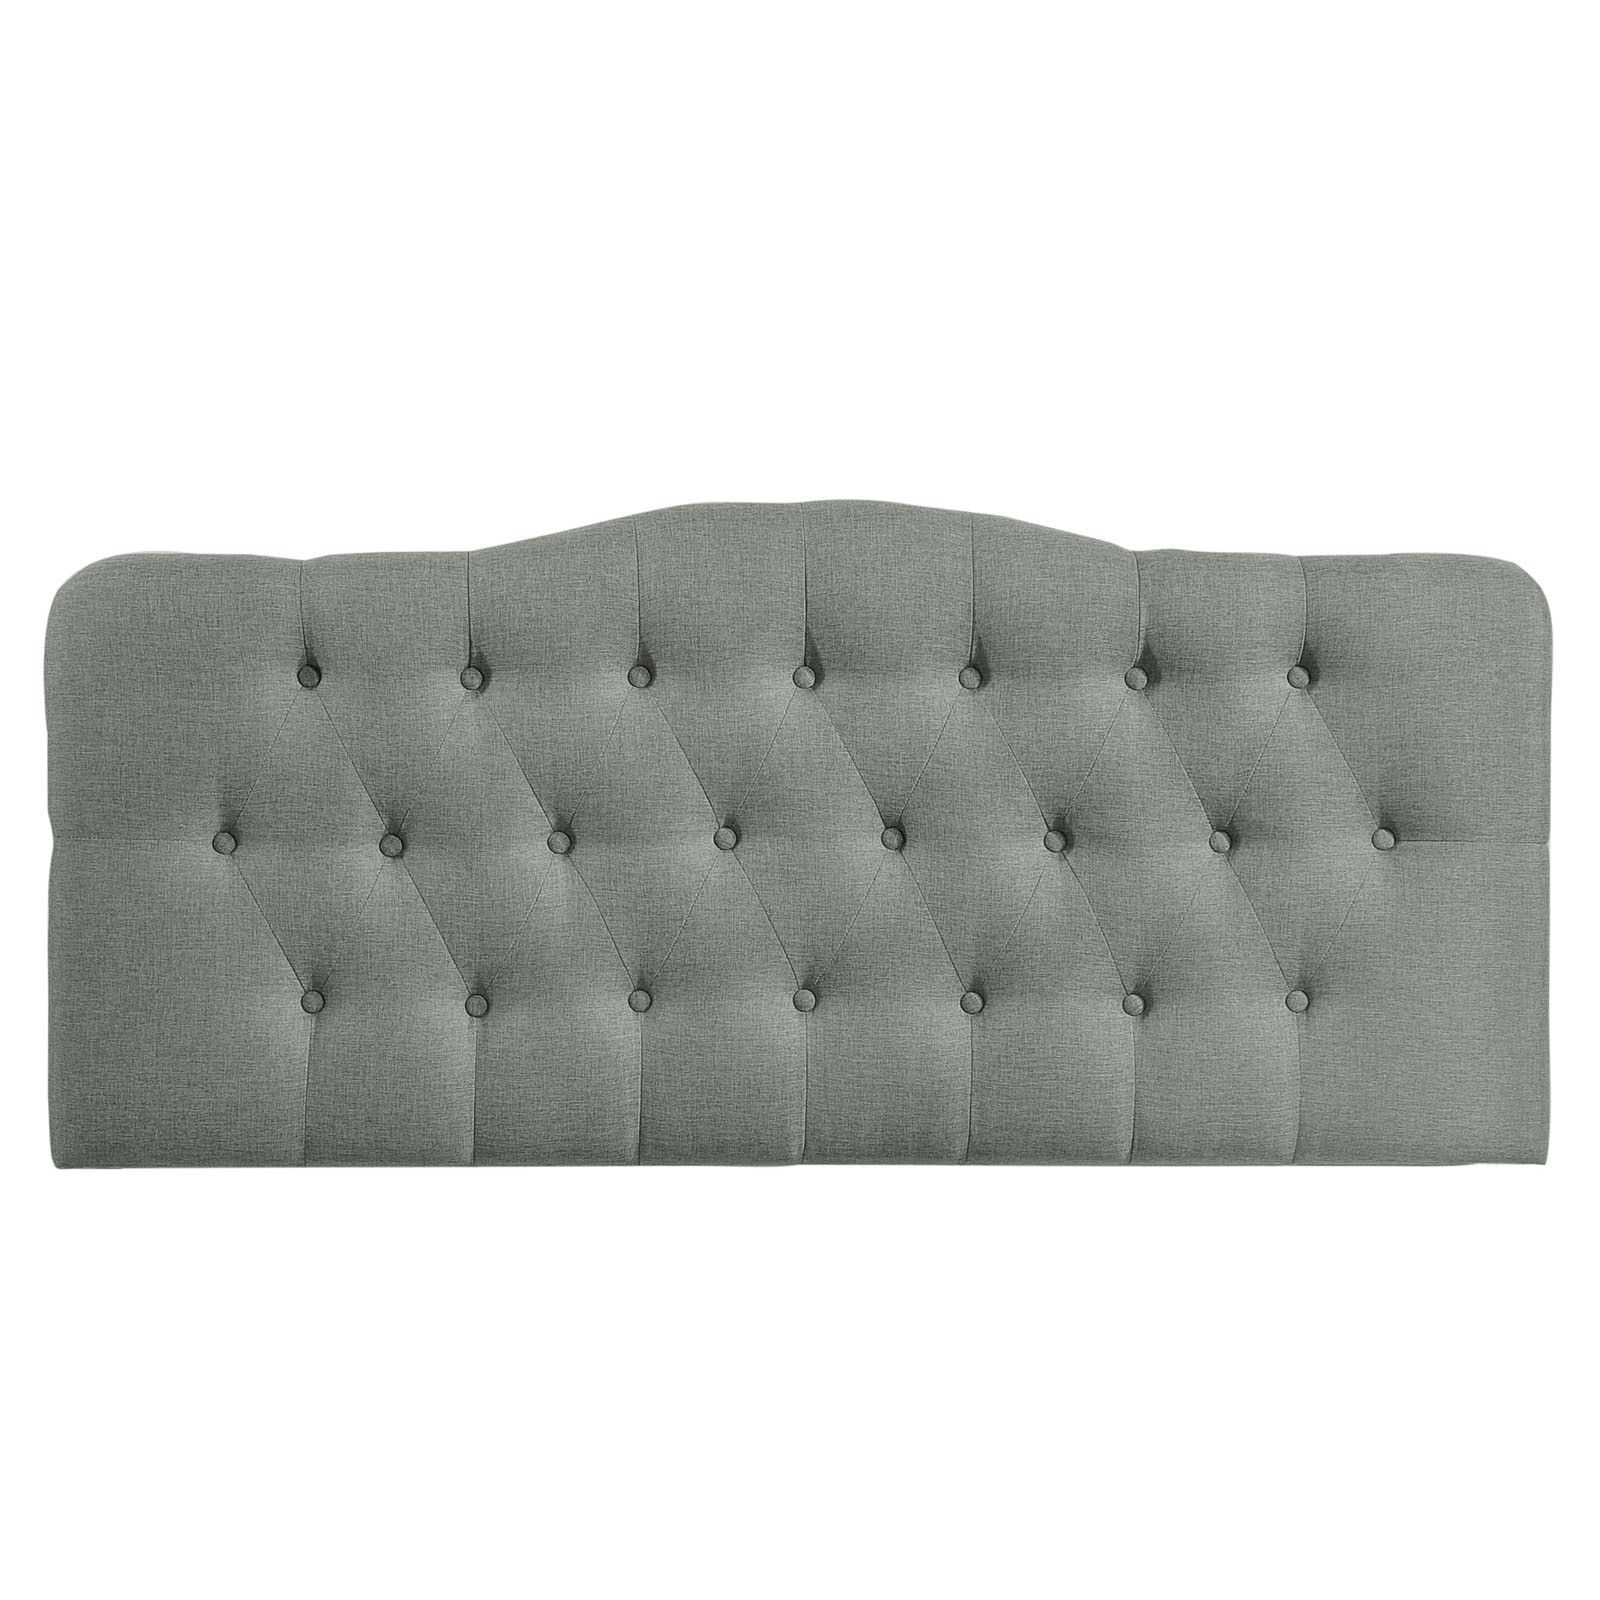 Pin by Hồng Yến on Cây Tufted upholstered